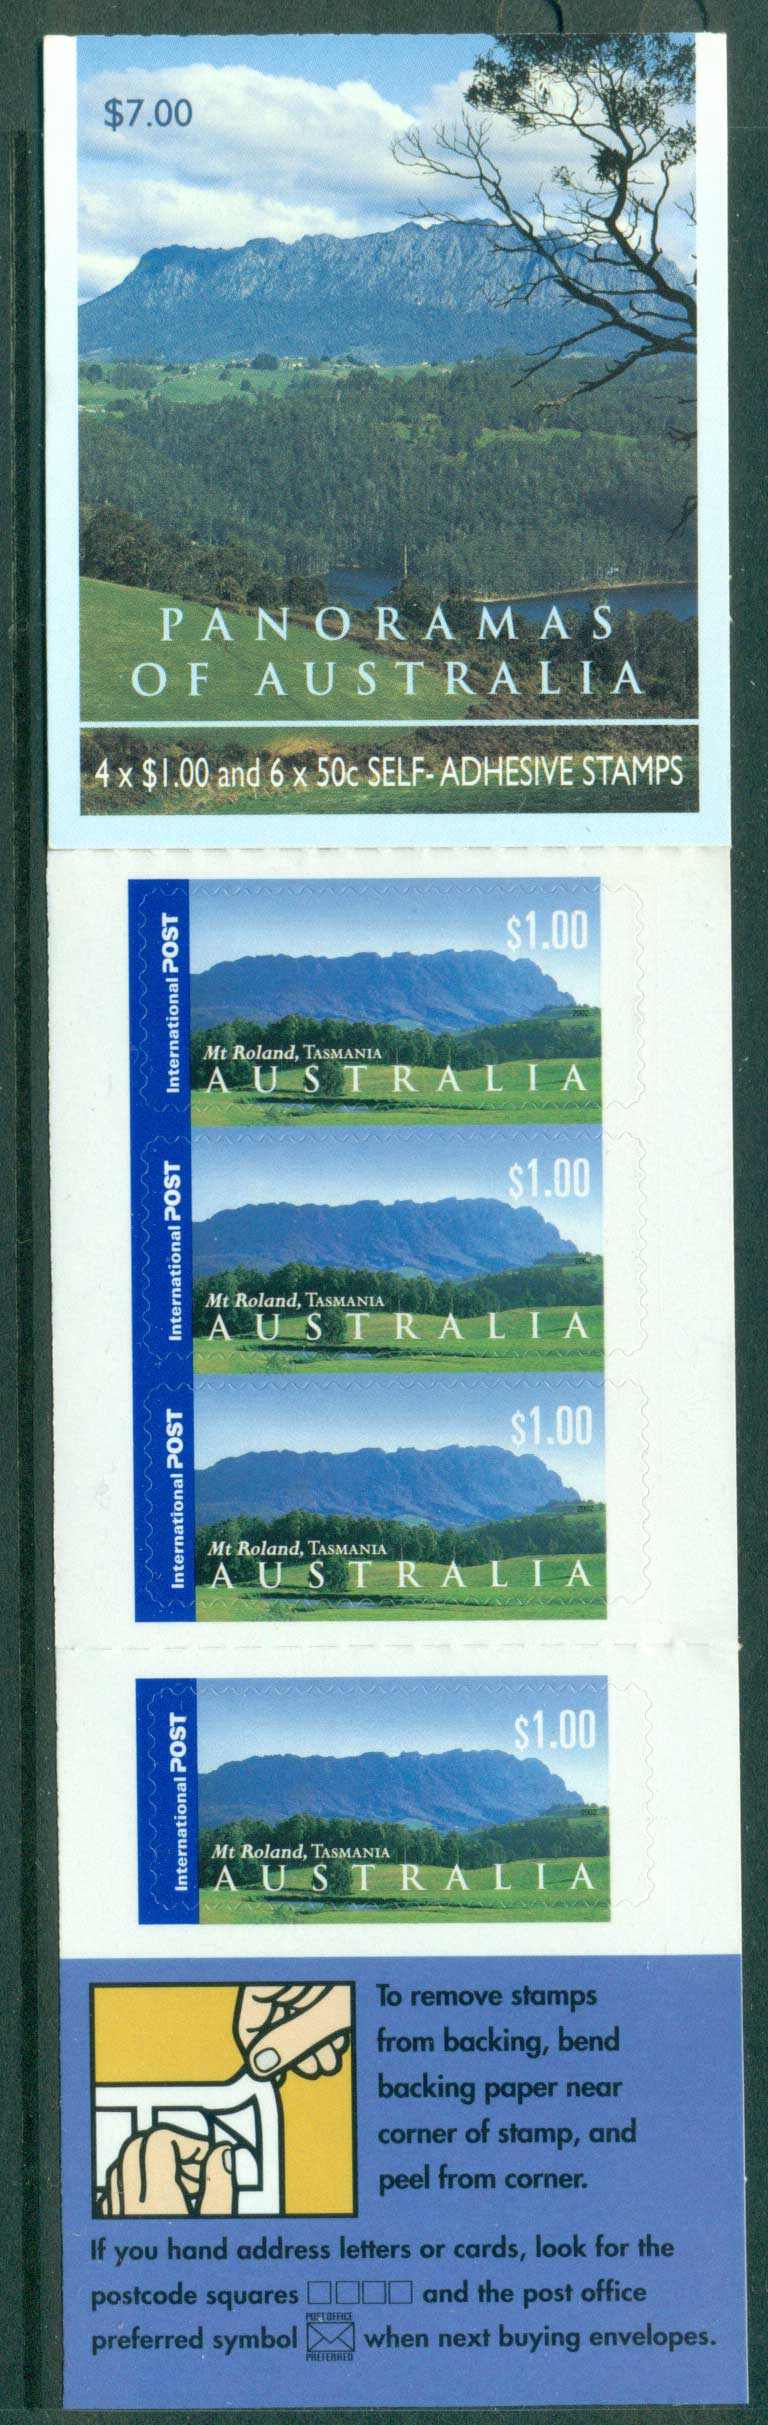 Australia 2002 $7.00 Panoramas B245 Philatelic Booklet Lot26087